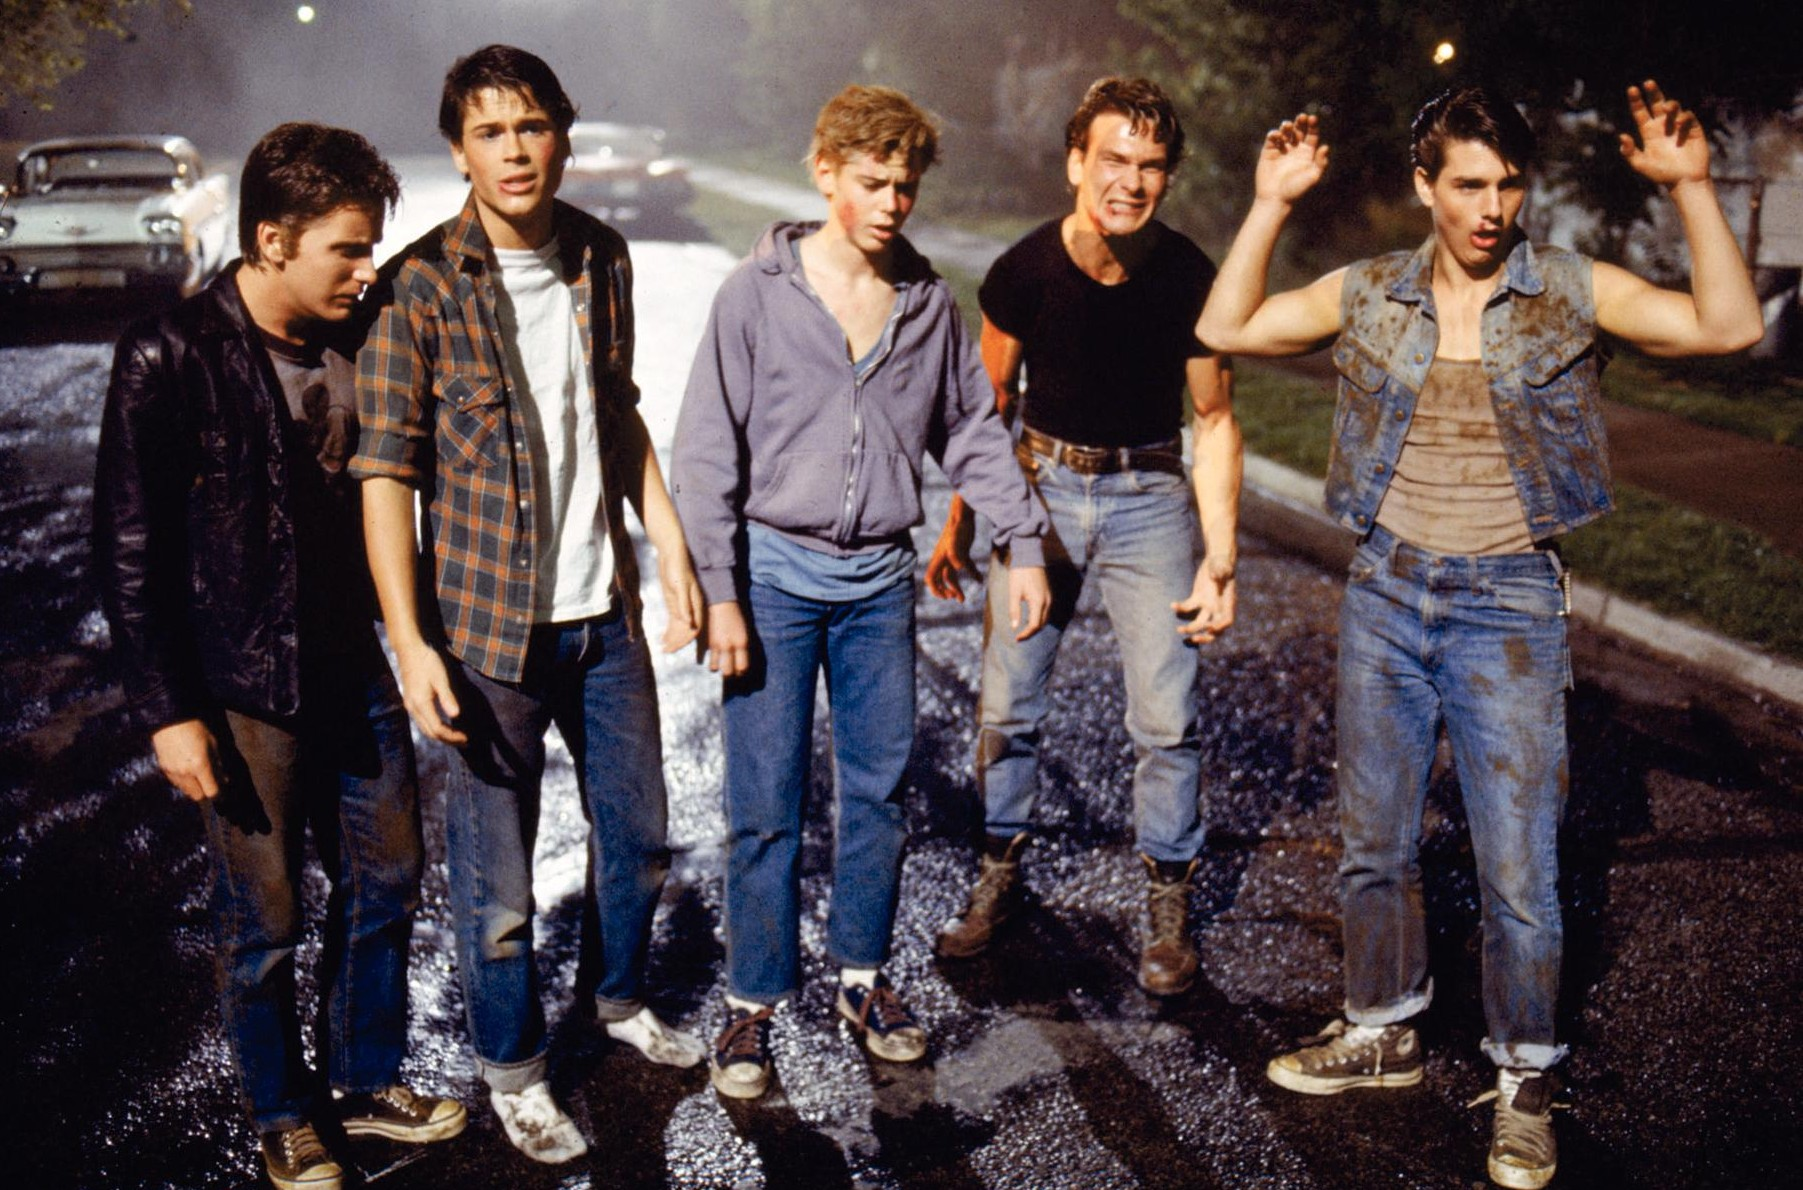 The Outsiders - The Outsiders Image (29395419) - Fanpop - Page 9